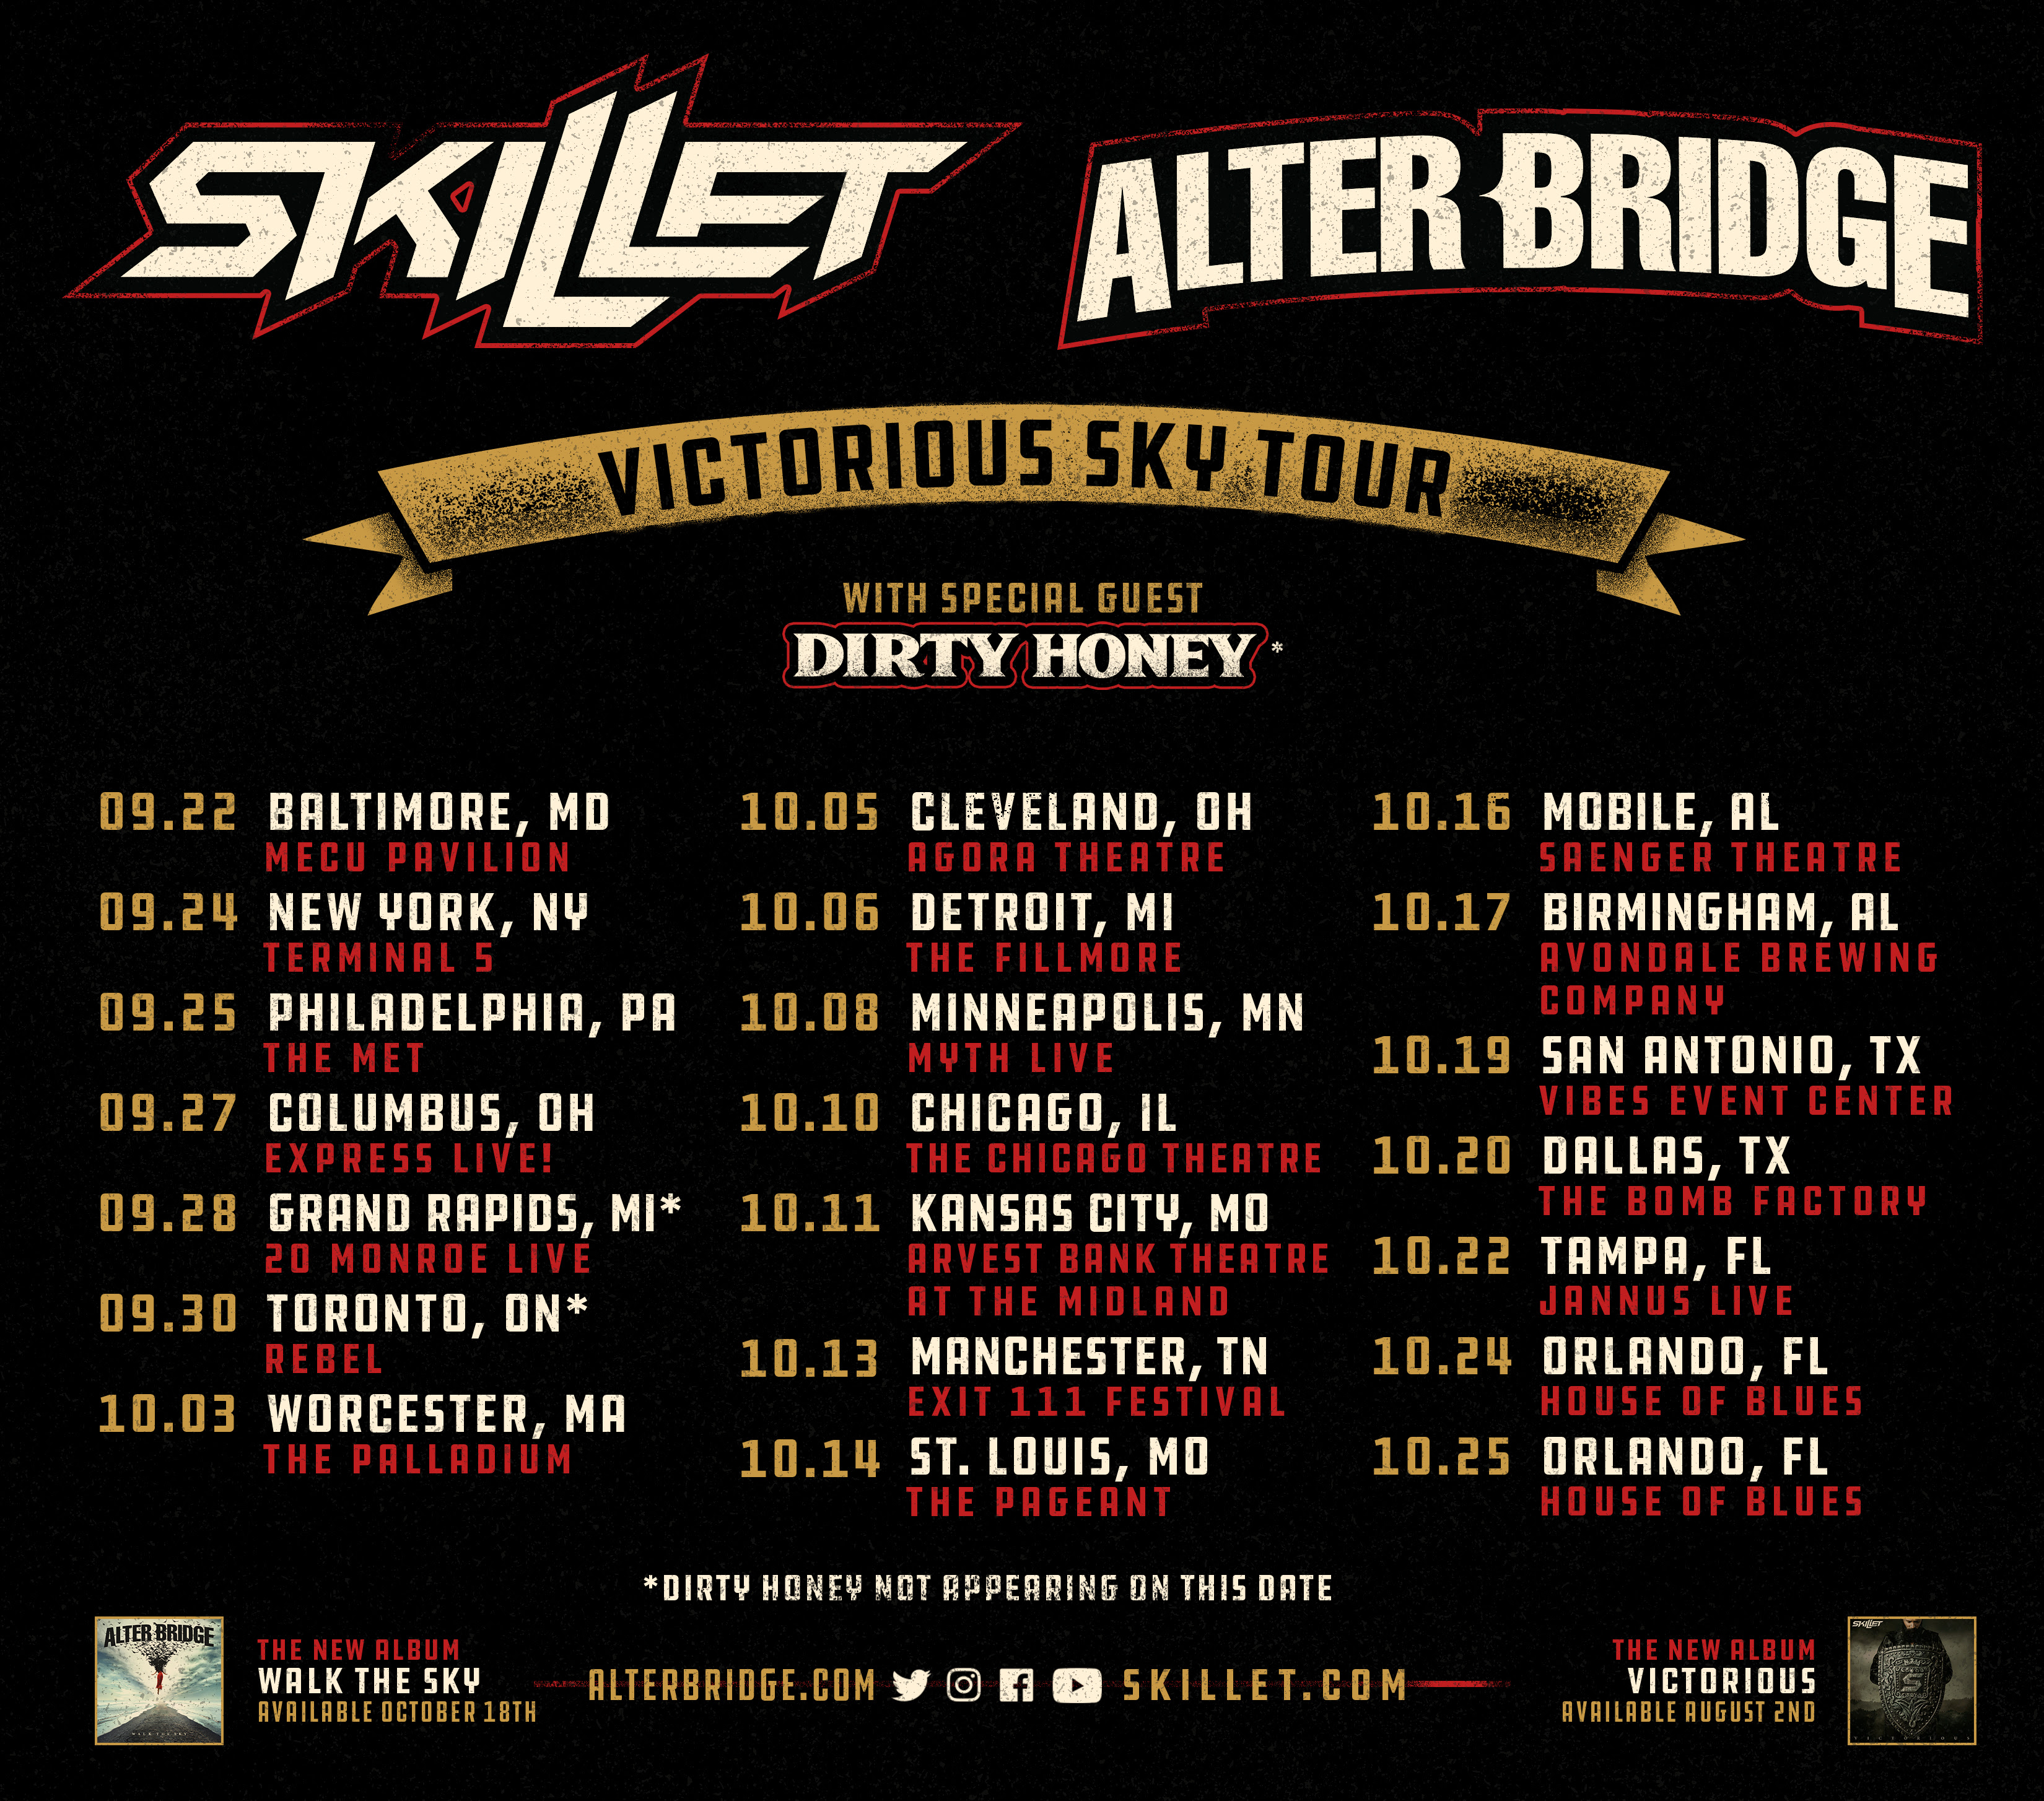 Skillet coming to the Chicago Theatre on Thursday, October 10, 2019